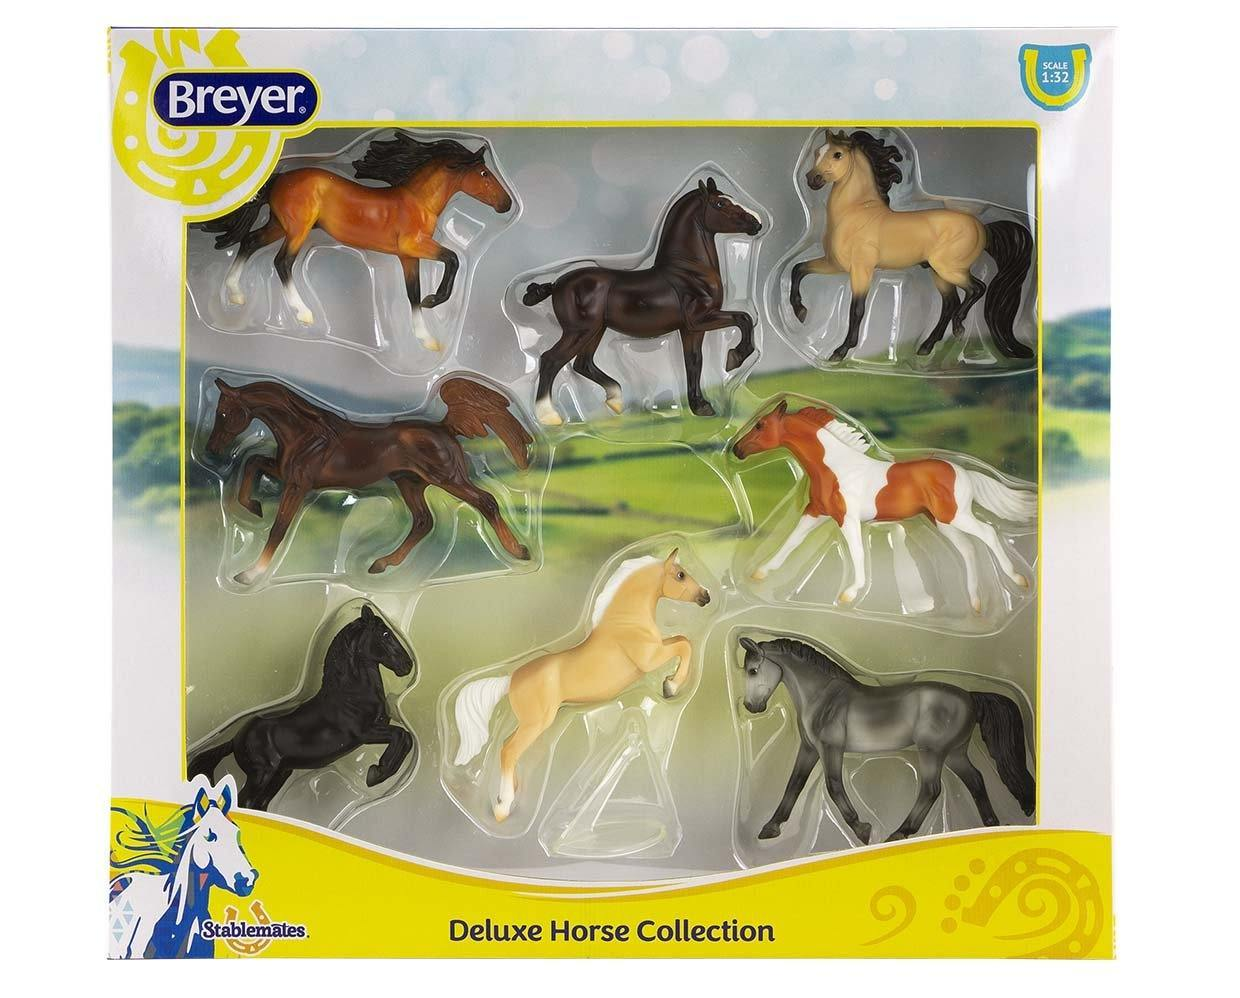 Breyer #6058 Deluxe Horse Collection - New Factory Sealed